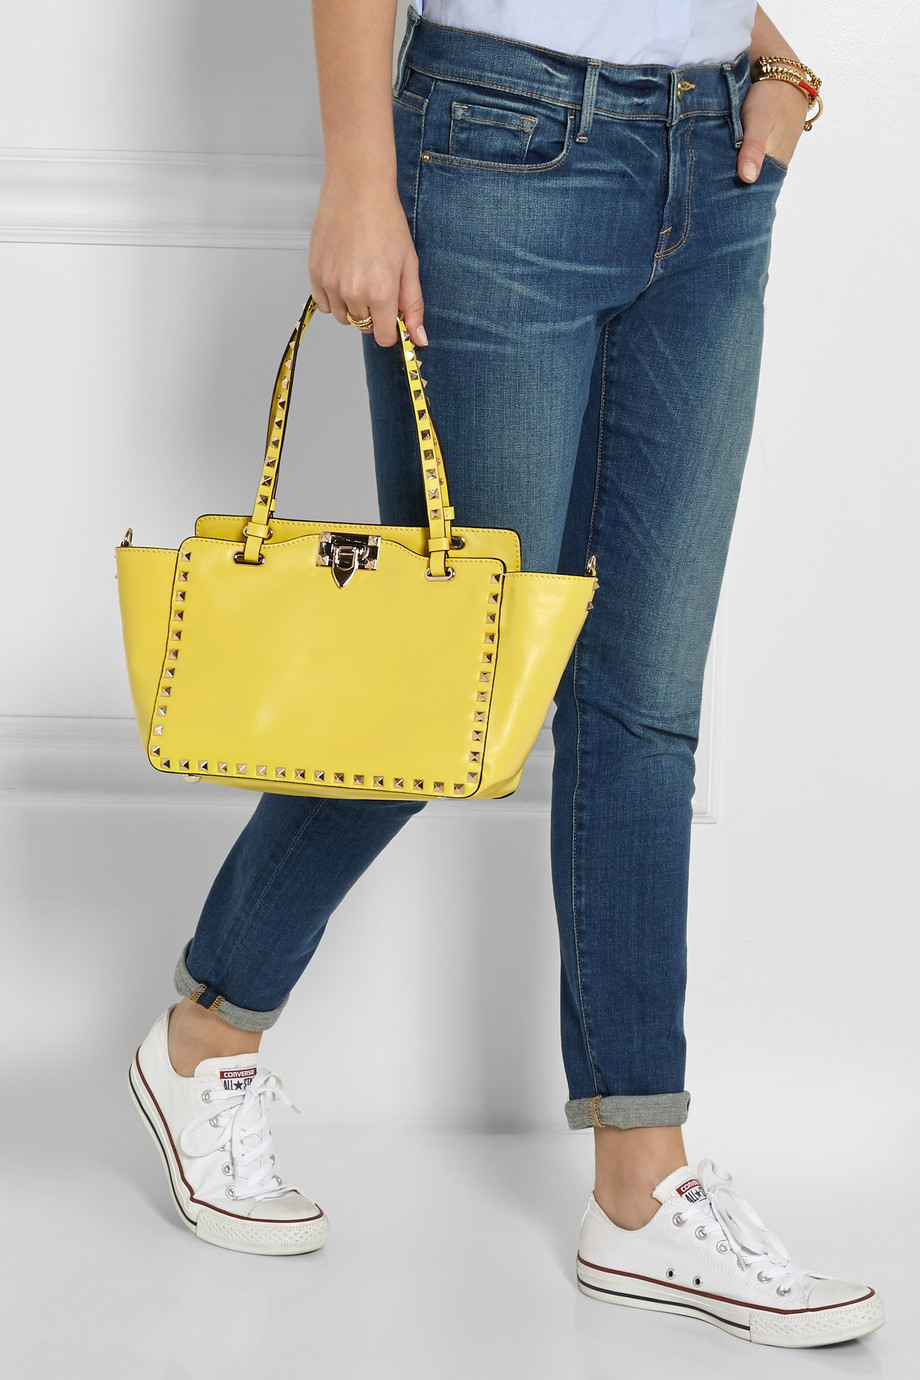 bb9558f566 Valentino The Rockstud Small Leather Trapeze Bag in Yellow - Lyst